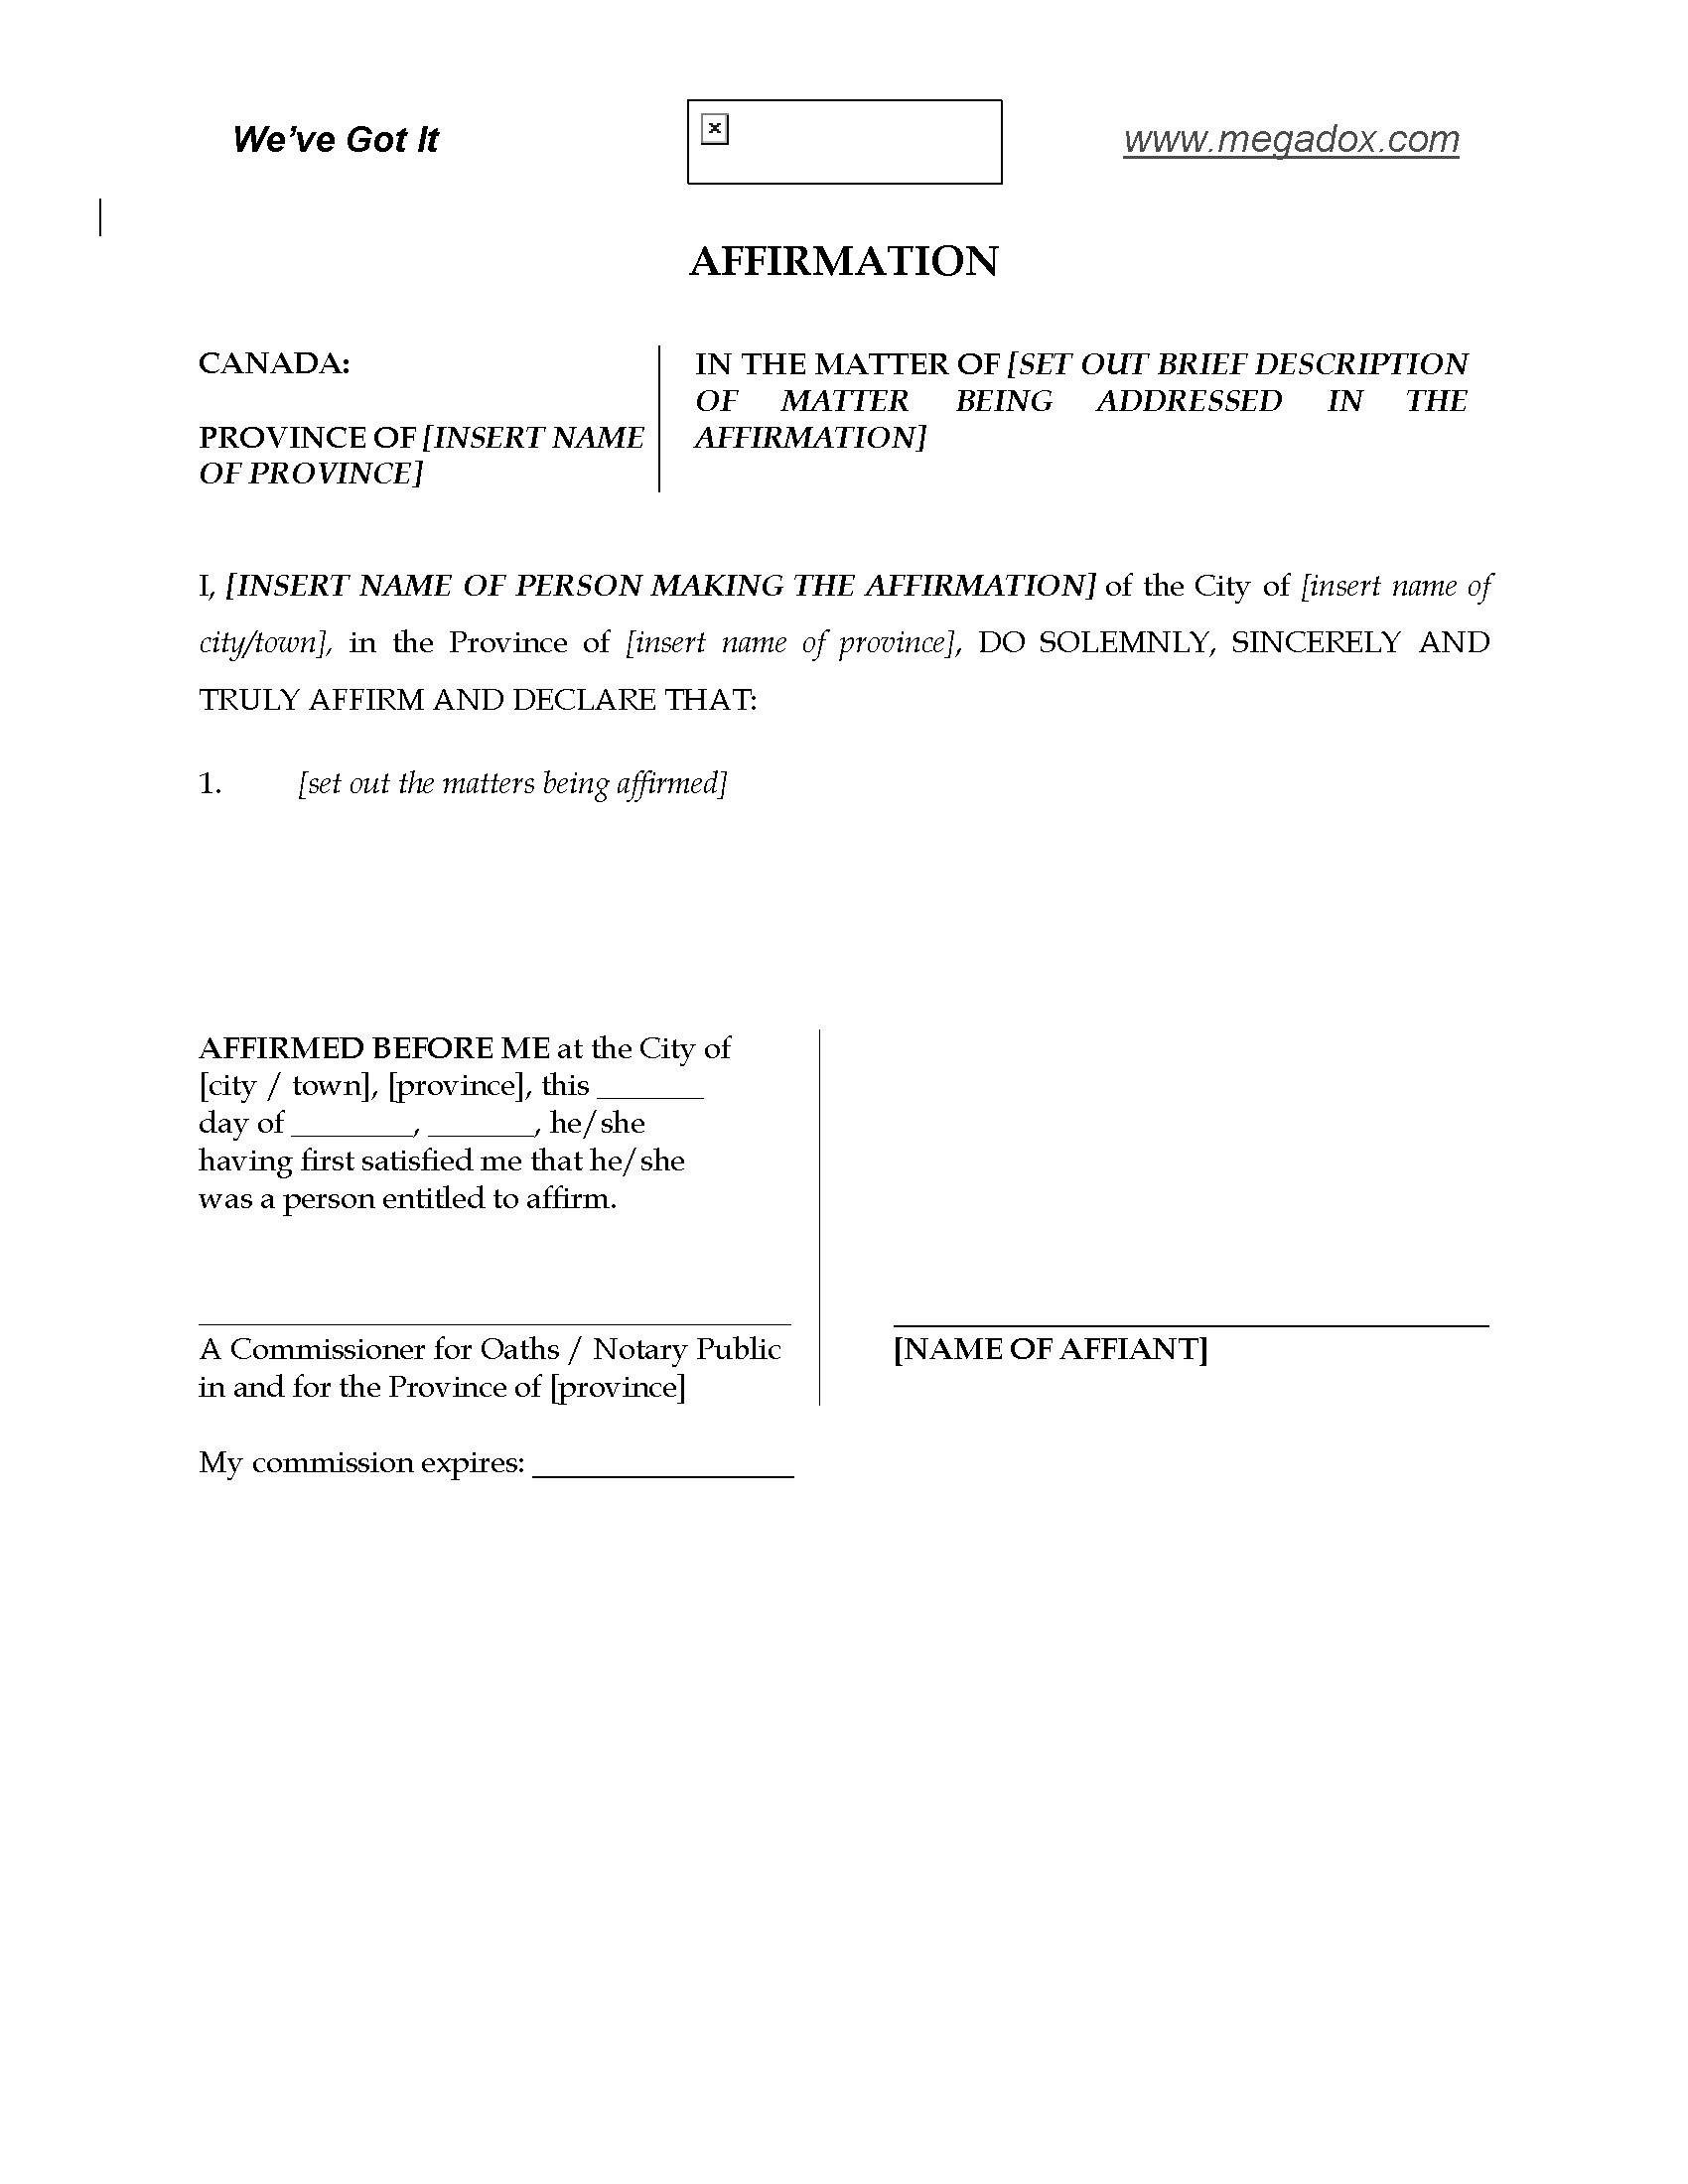 Canada Affirmation Form to be used in place of affidavit